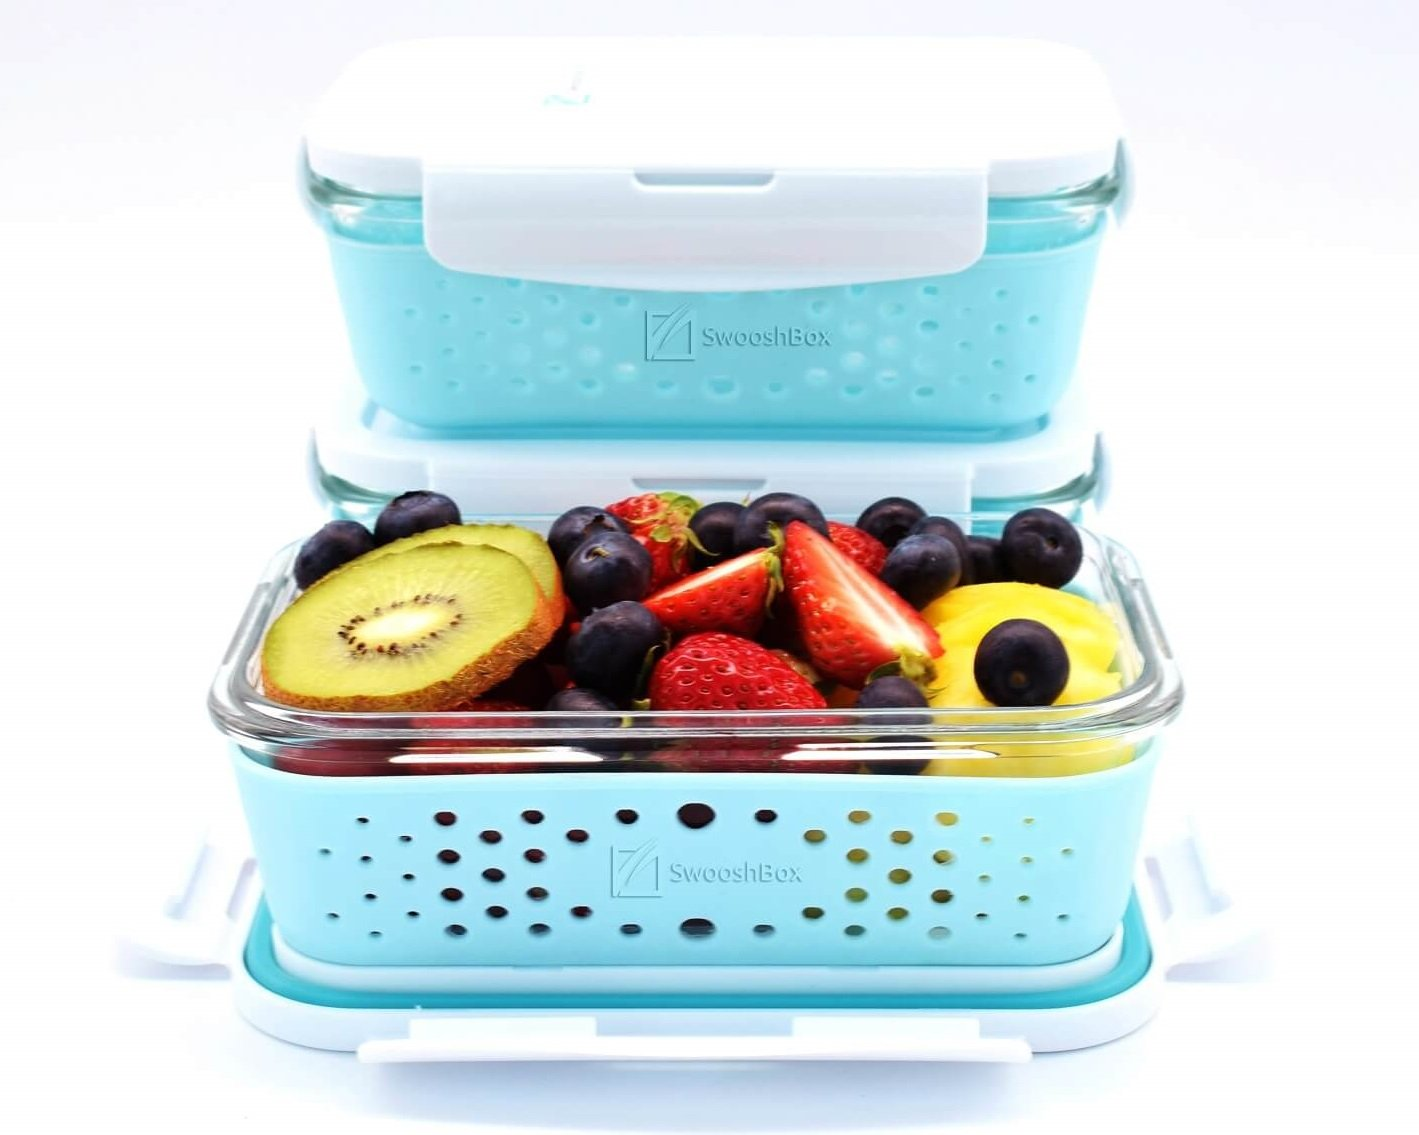 SwooshBox Premium Storage Glass Food Container Set Rectangular Non-slip Silicone Sleeve Shield Containers - 3 Piece 28 Ounce (3.5 cup), BPA-free, Leak Proof, Microwave, Oven, Freezer & Dishwasher Safe